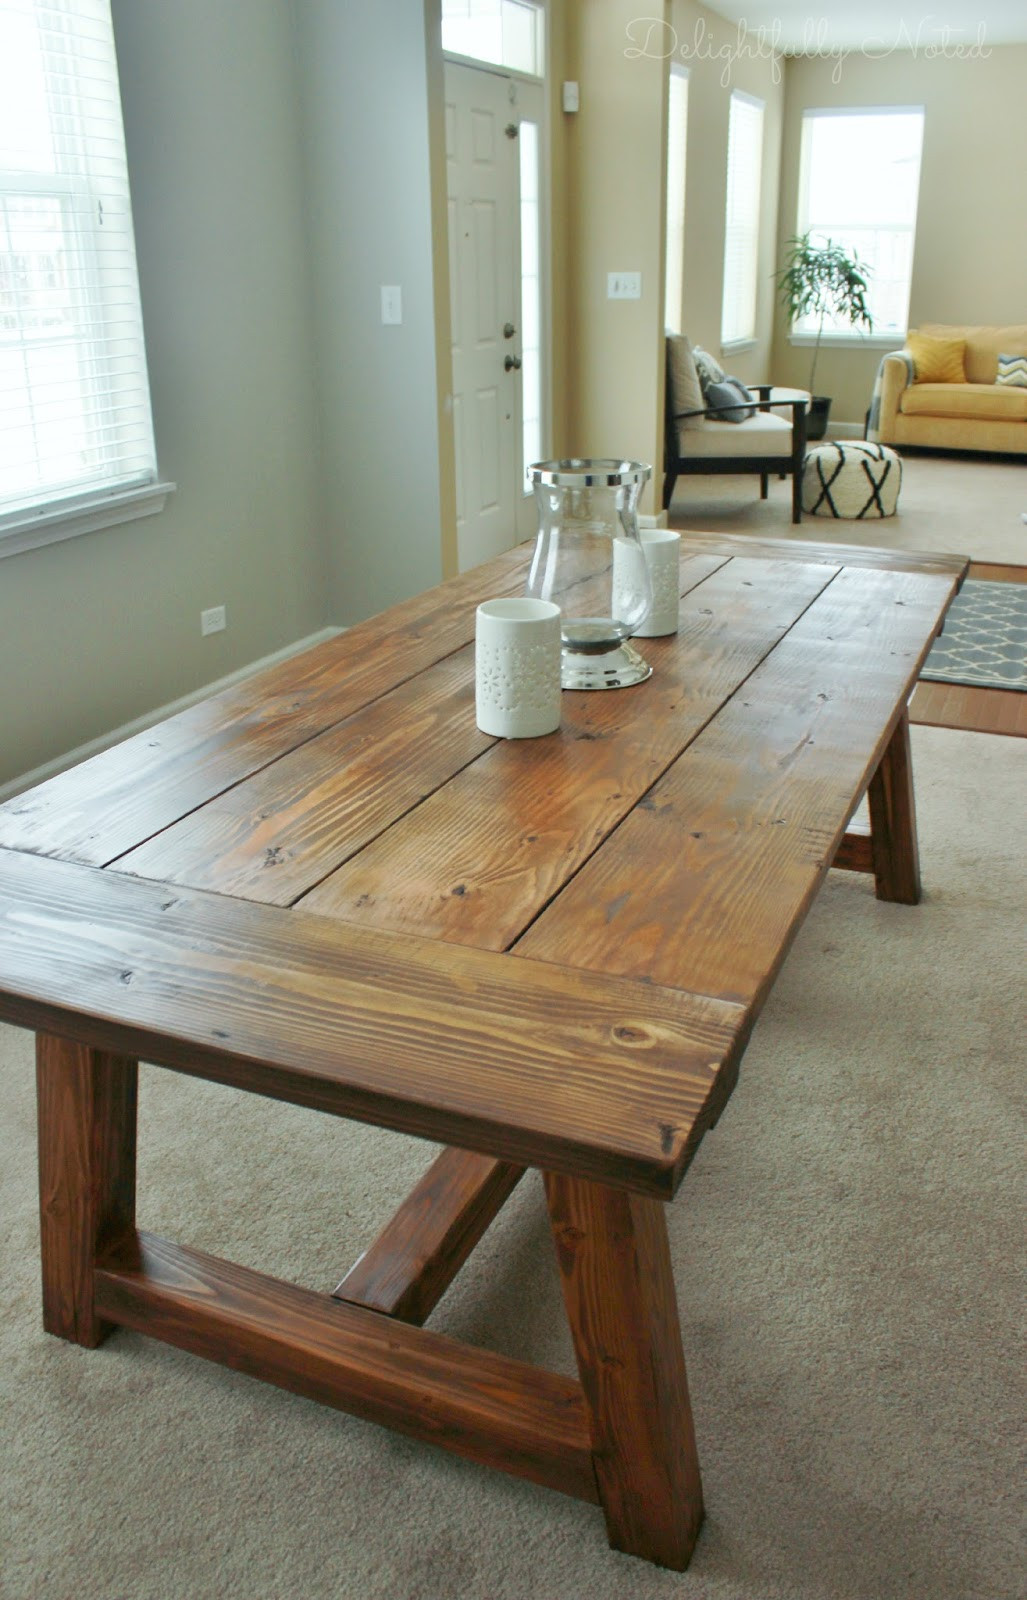 Best ideas about Diy Dining Table . Save or Pin Holy Cannoli We Built a Farmhouse Dining Room Table Now.